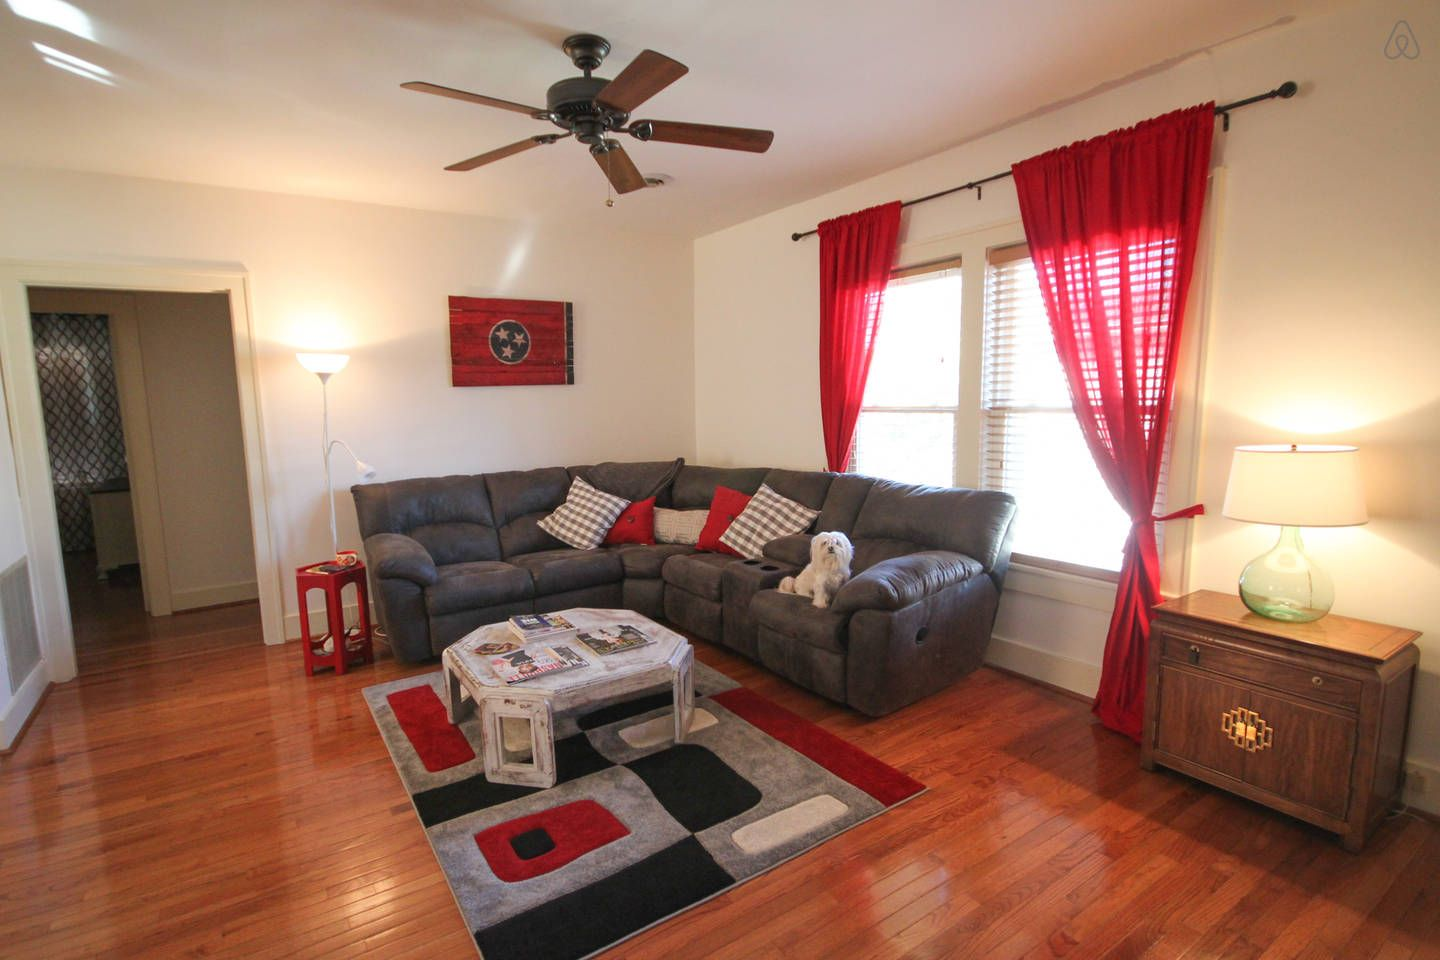 1000 sq ft Condo on Music Row/Vandy vacation rental in